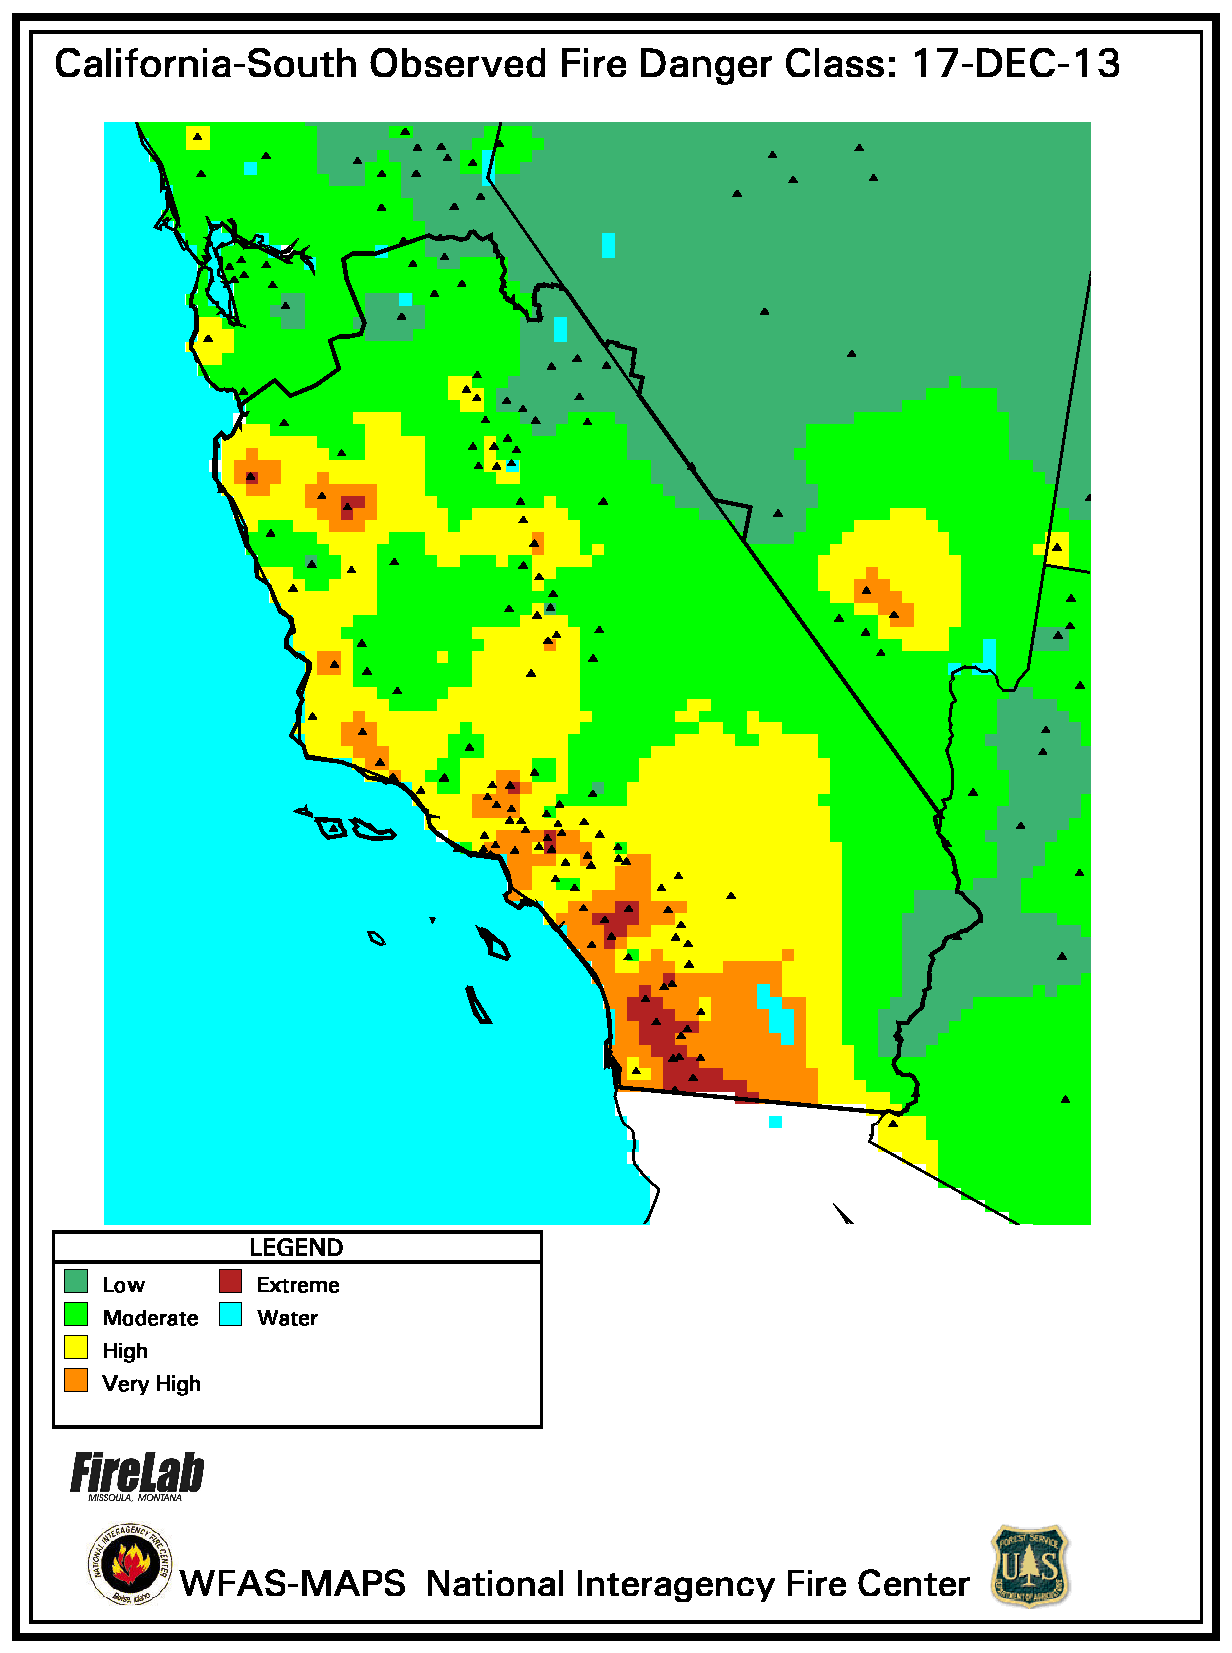 Southern California Observed Fire Danger by SLOweather.com on